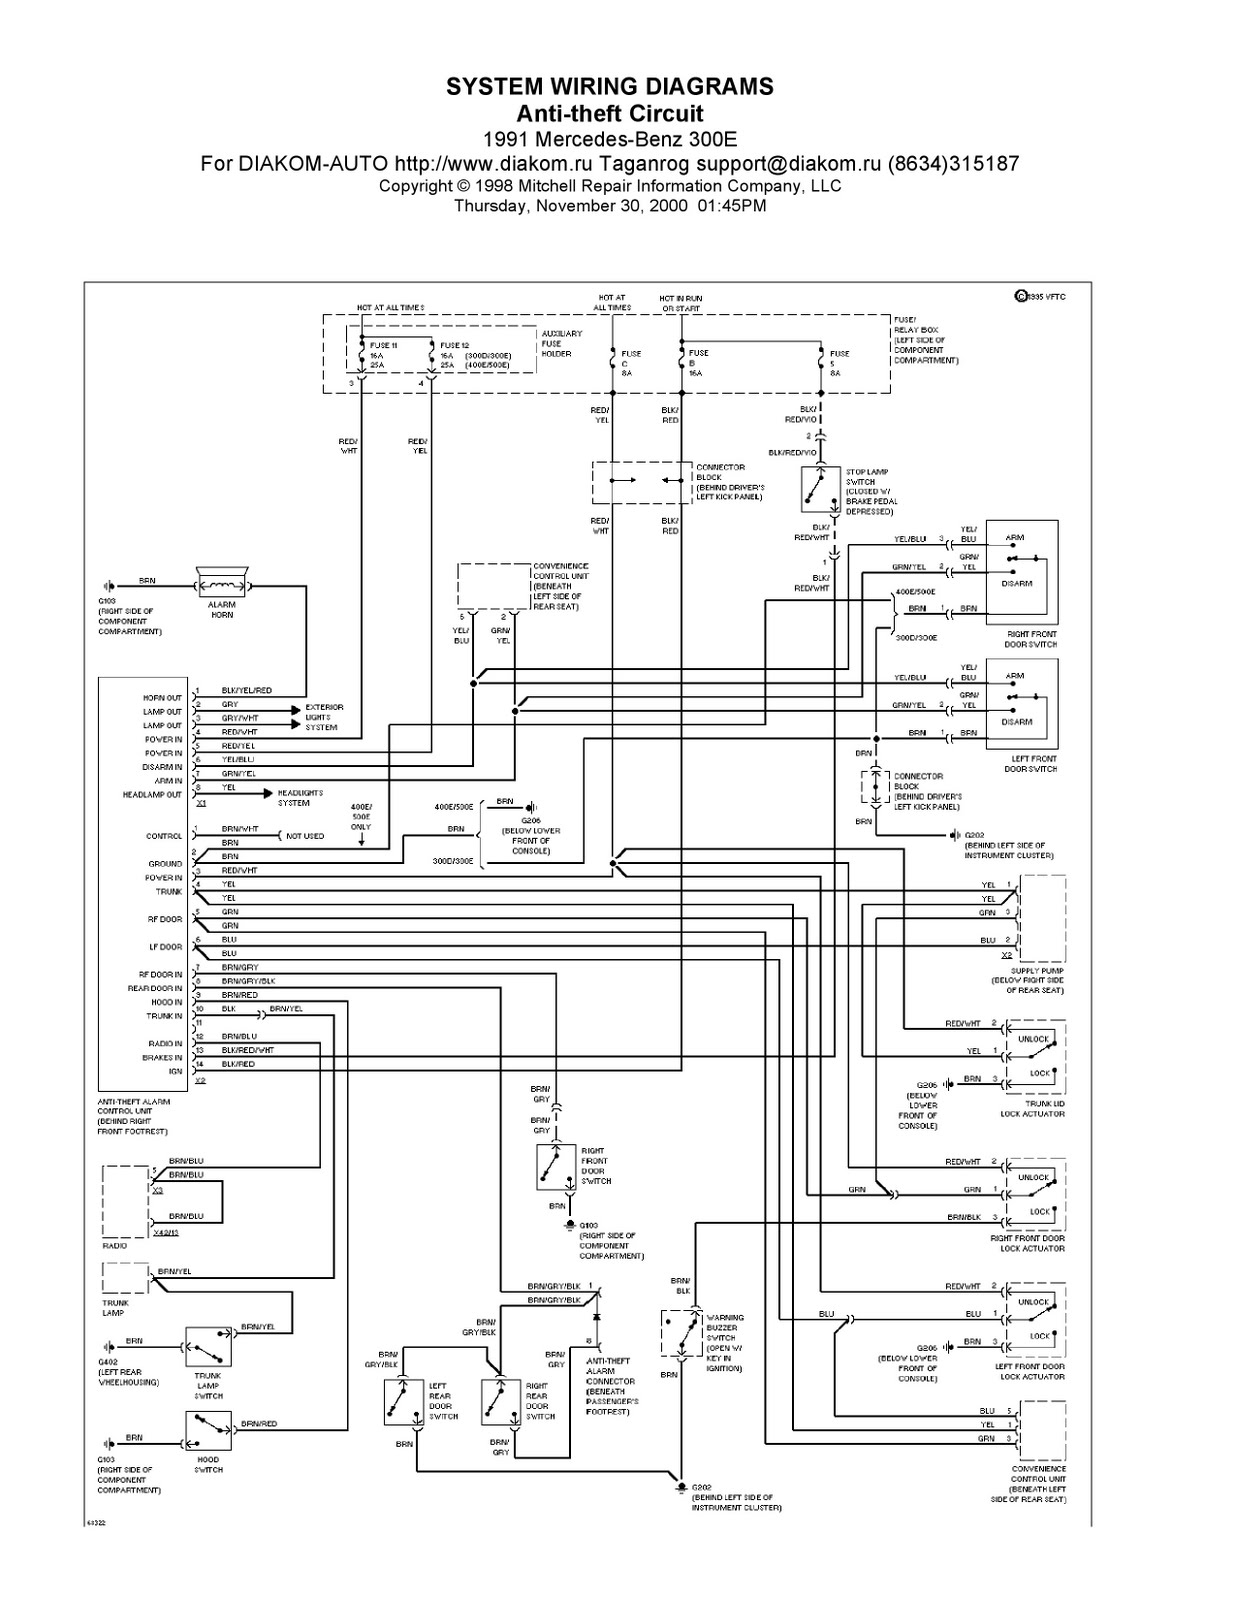 1991 mercedes benz 300e system wiring diagrams anti theft for Mercedes benz w124 230e wiring diagram